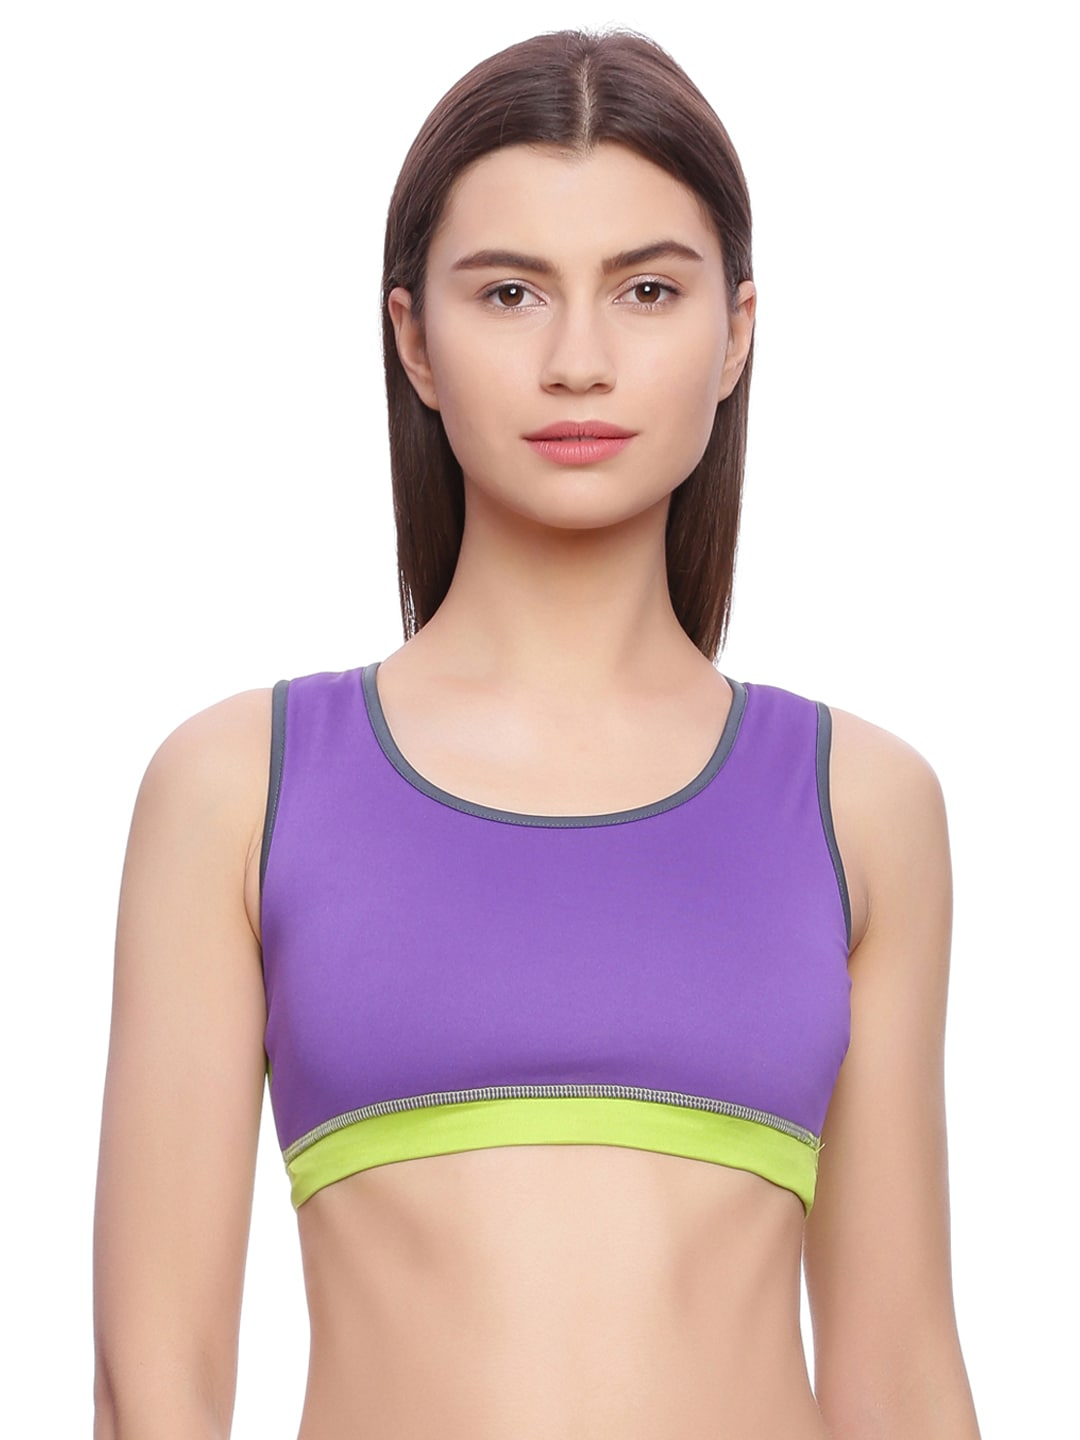 Rosaline Purple & Lime Green Solid Underwired Lightly Padded Sports Bra image